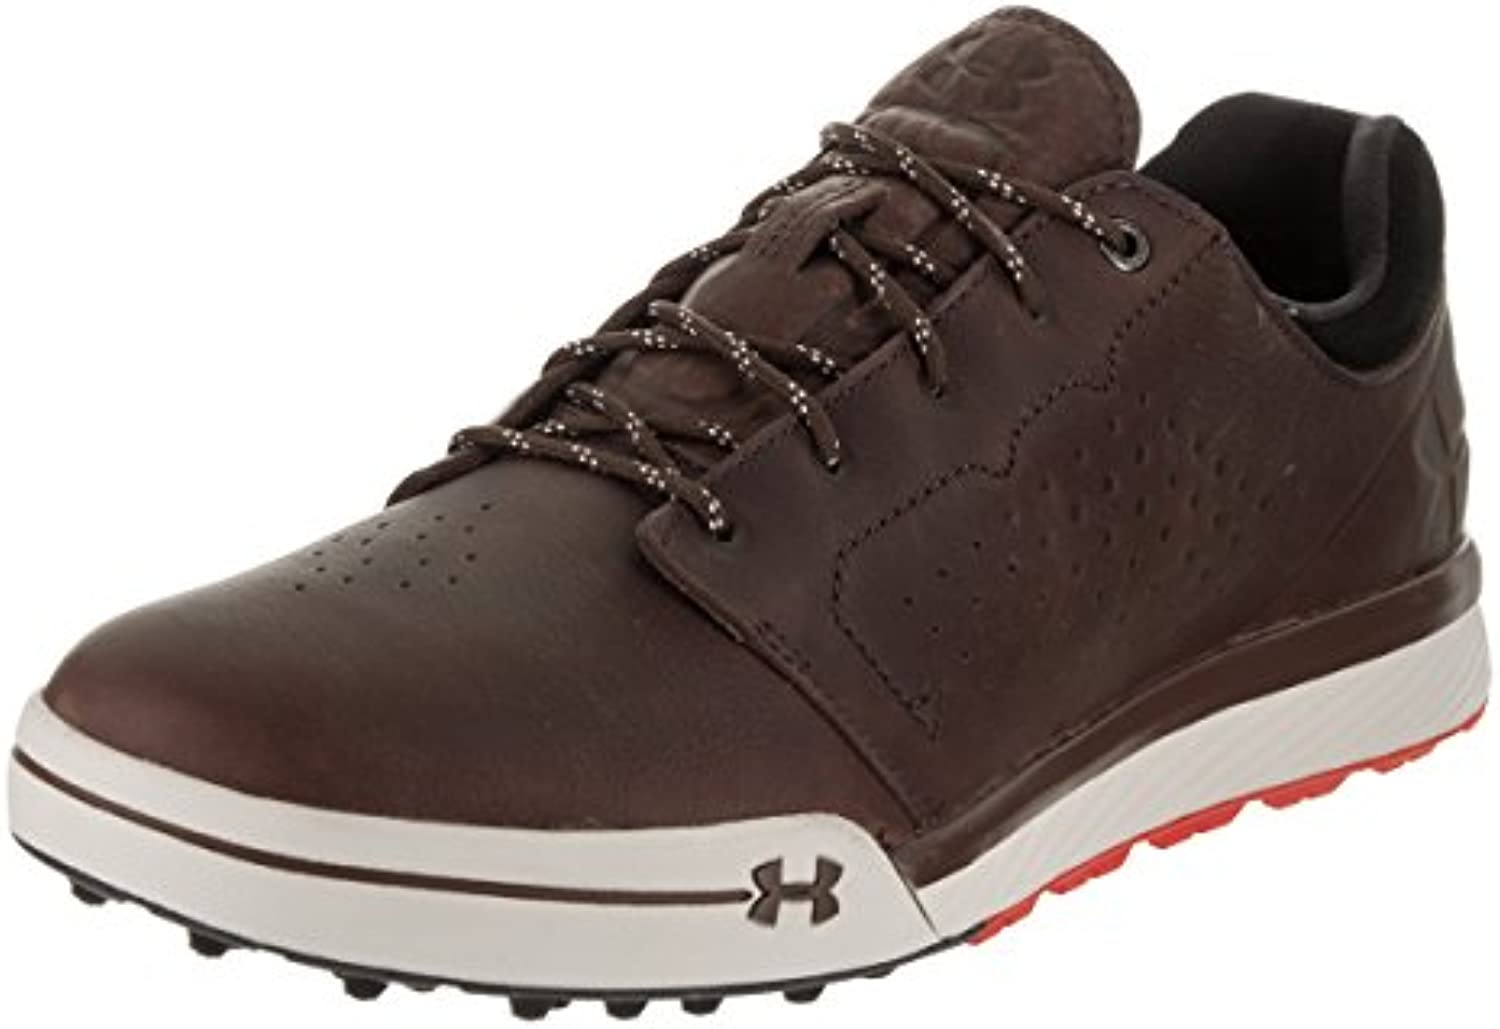 Under Armour 2017 UA Tempo Hybrid Water Resistant Mens Spikeless Golf Shoes   Leather Cleveland Brown 9UK